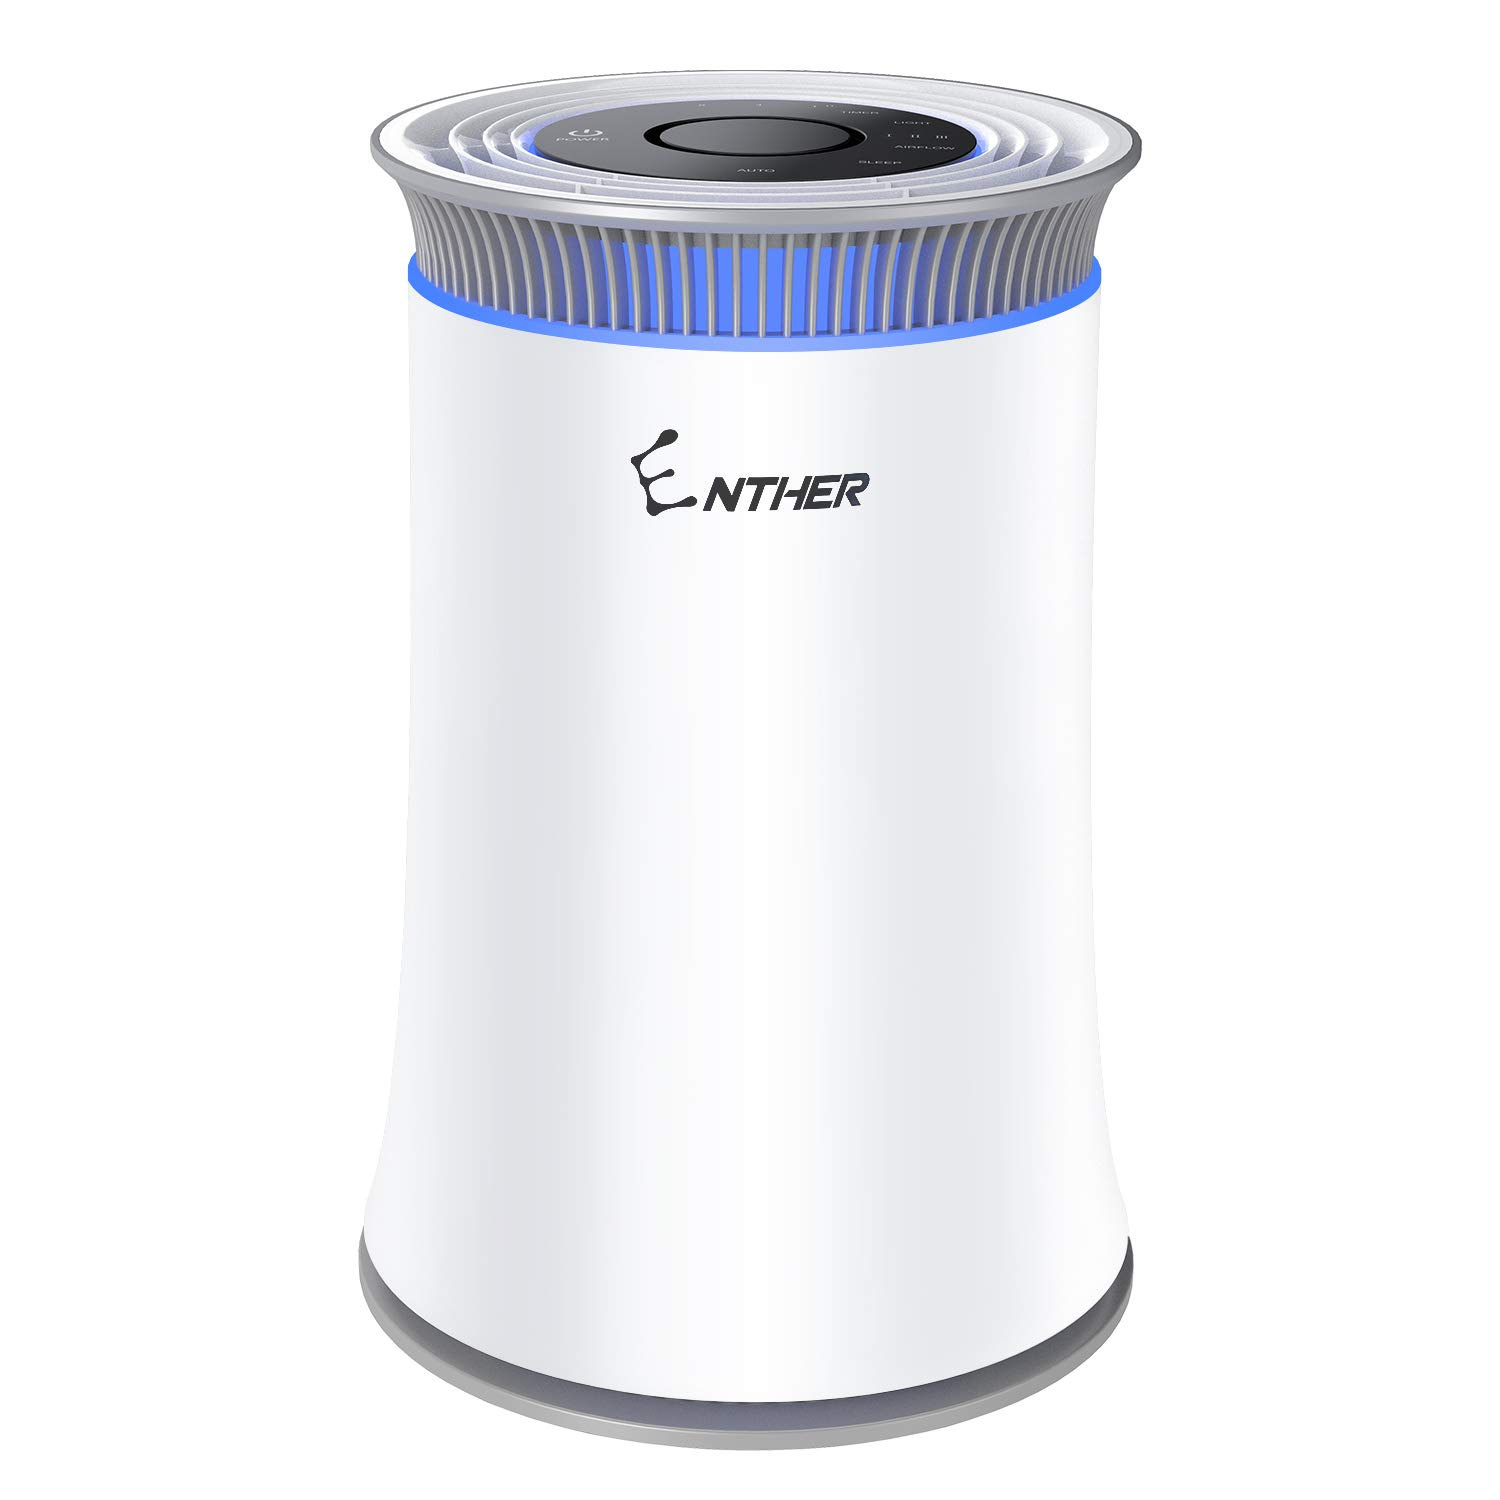 Enther Air Purifier with True HEPA Filter